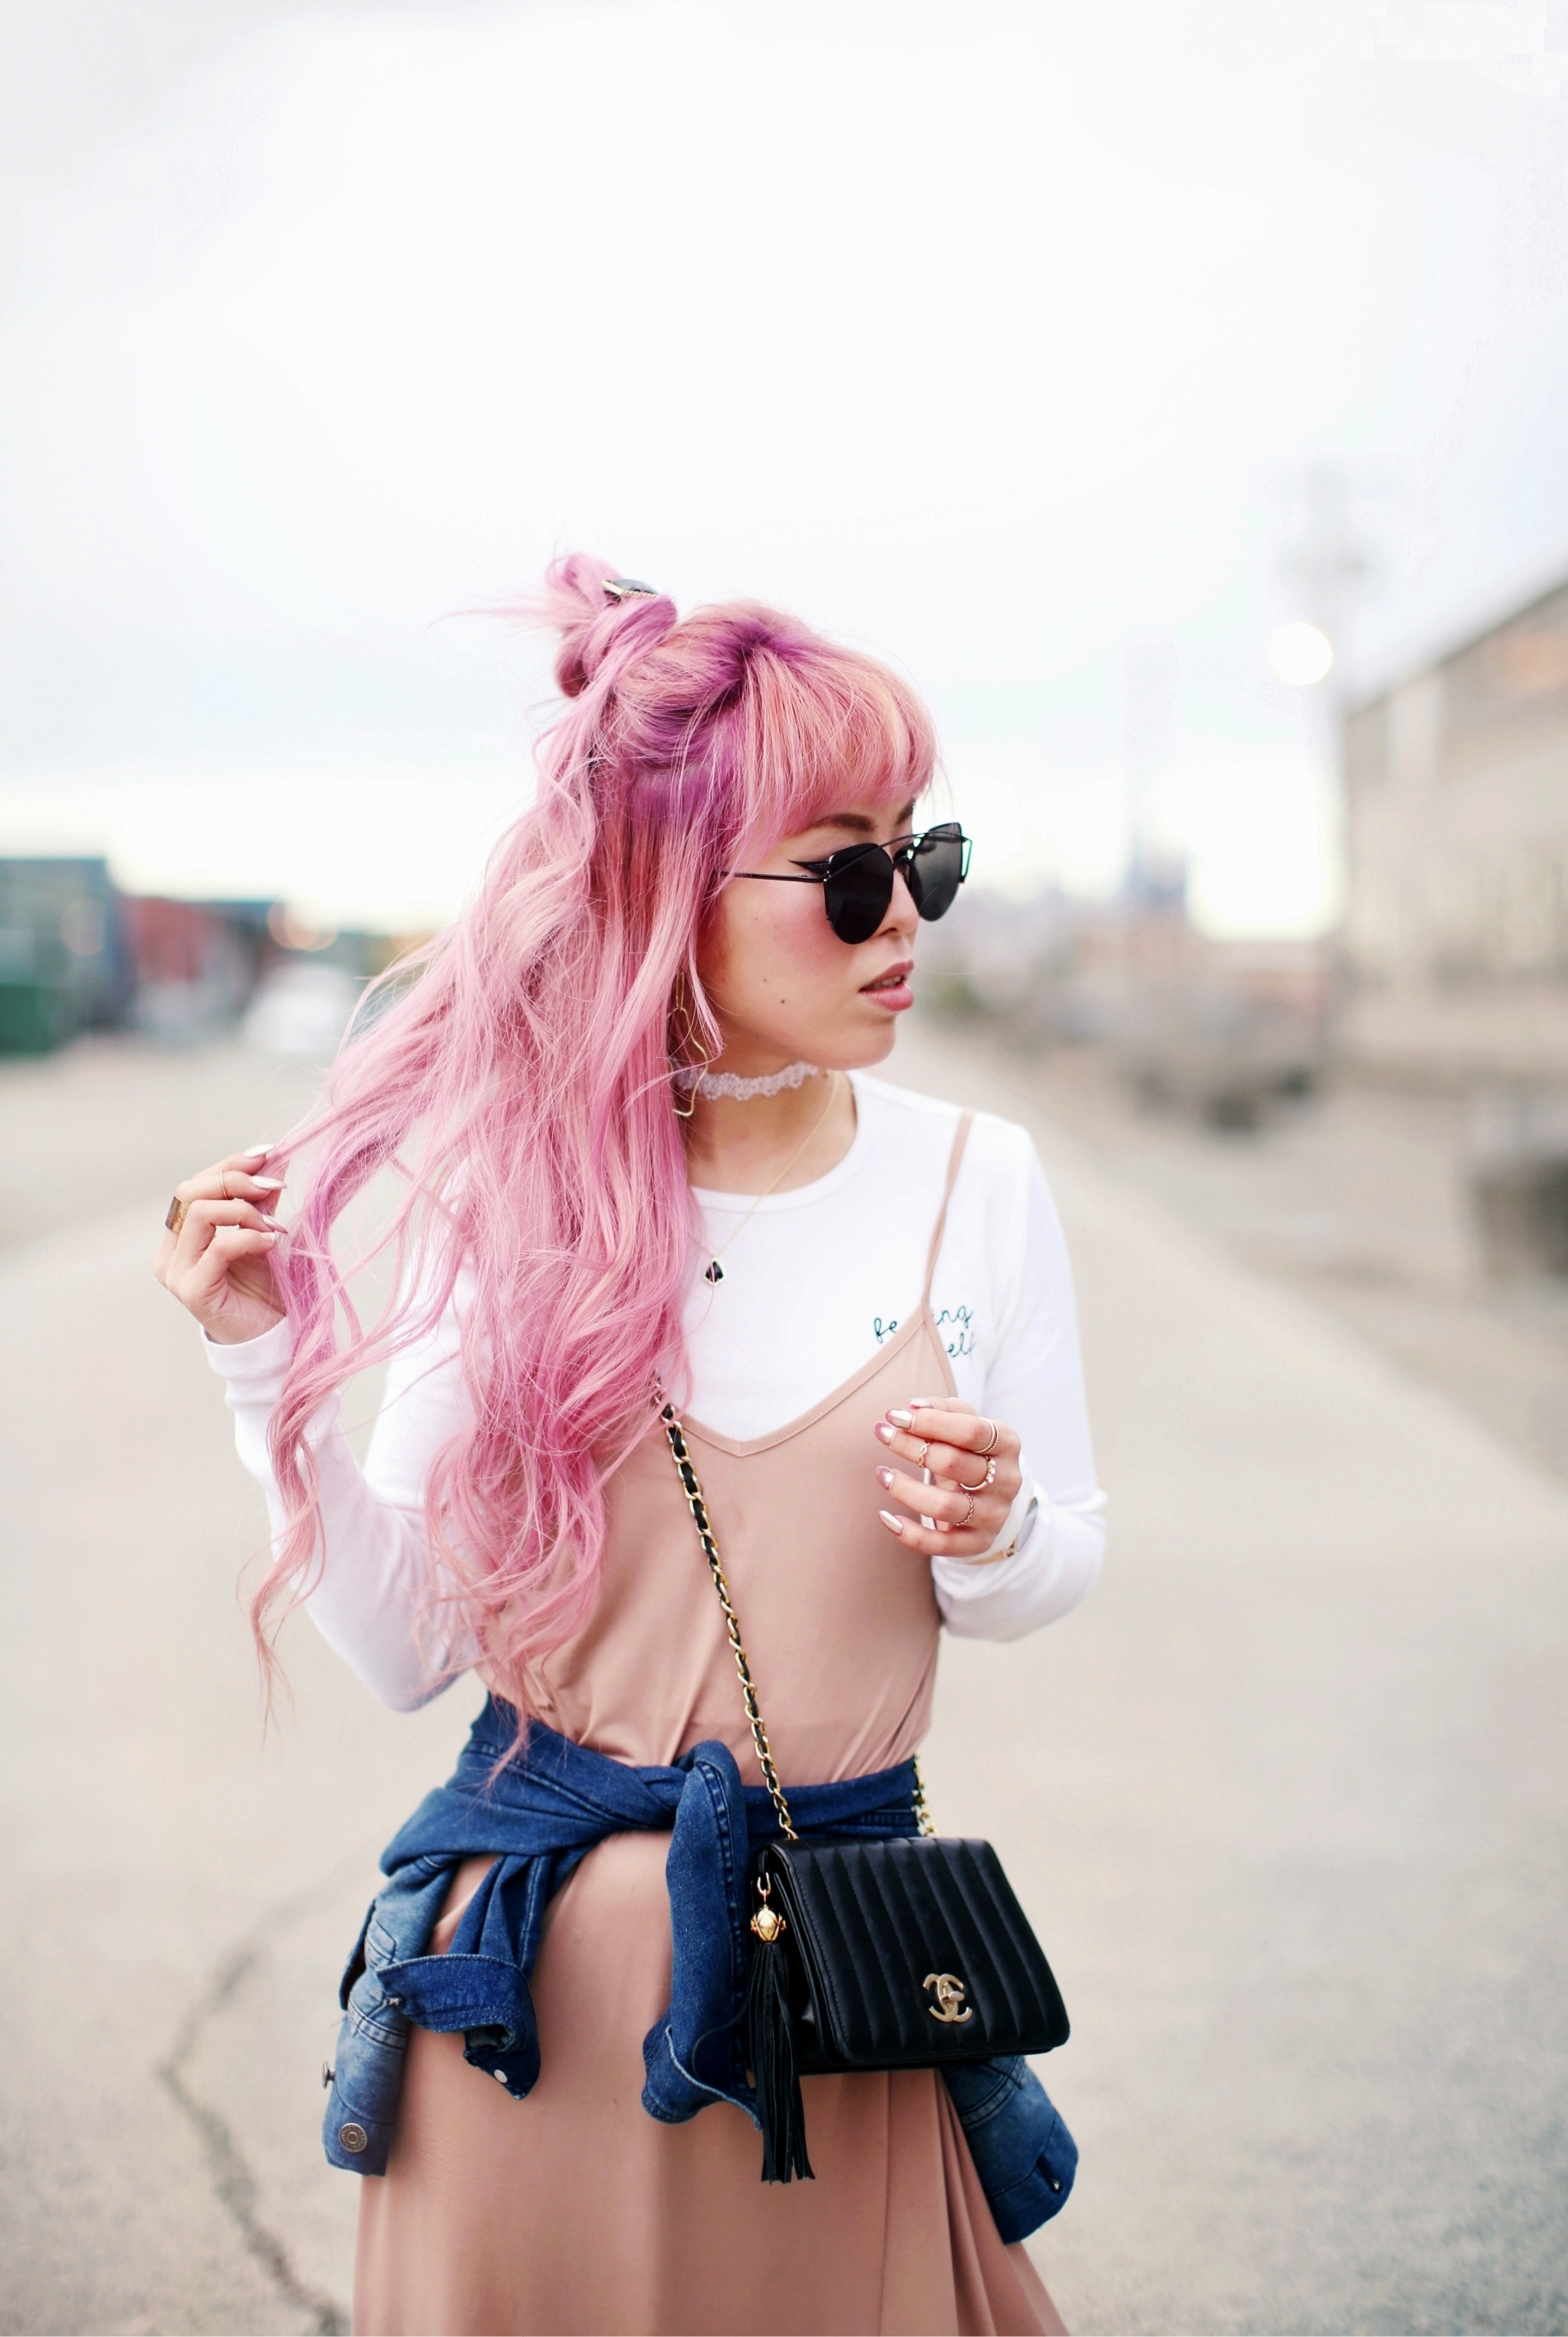 Forever 21 Long sleeve crop top_ZARA blush slip dress_Adidas Super Star sneakers_Vintage Chanel crossbodybag_Daniel Wellington Petite rose gold watch_Guess denim jacket_Aika's Love Closet_Seattle Fashion style blogger_Japanese_pink hair_Top knot hair  4